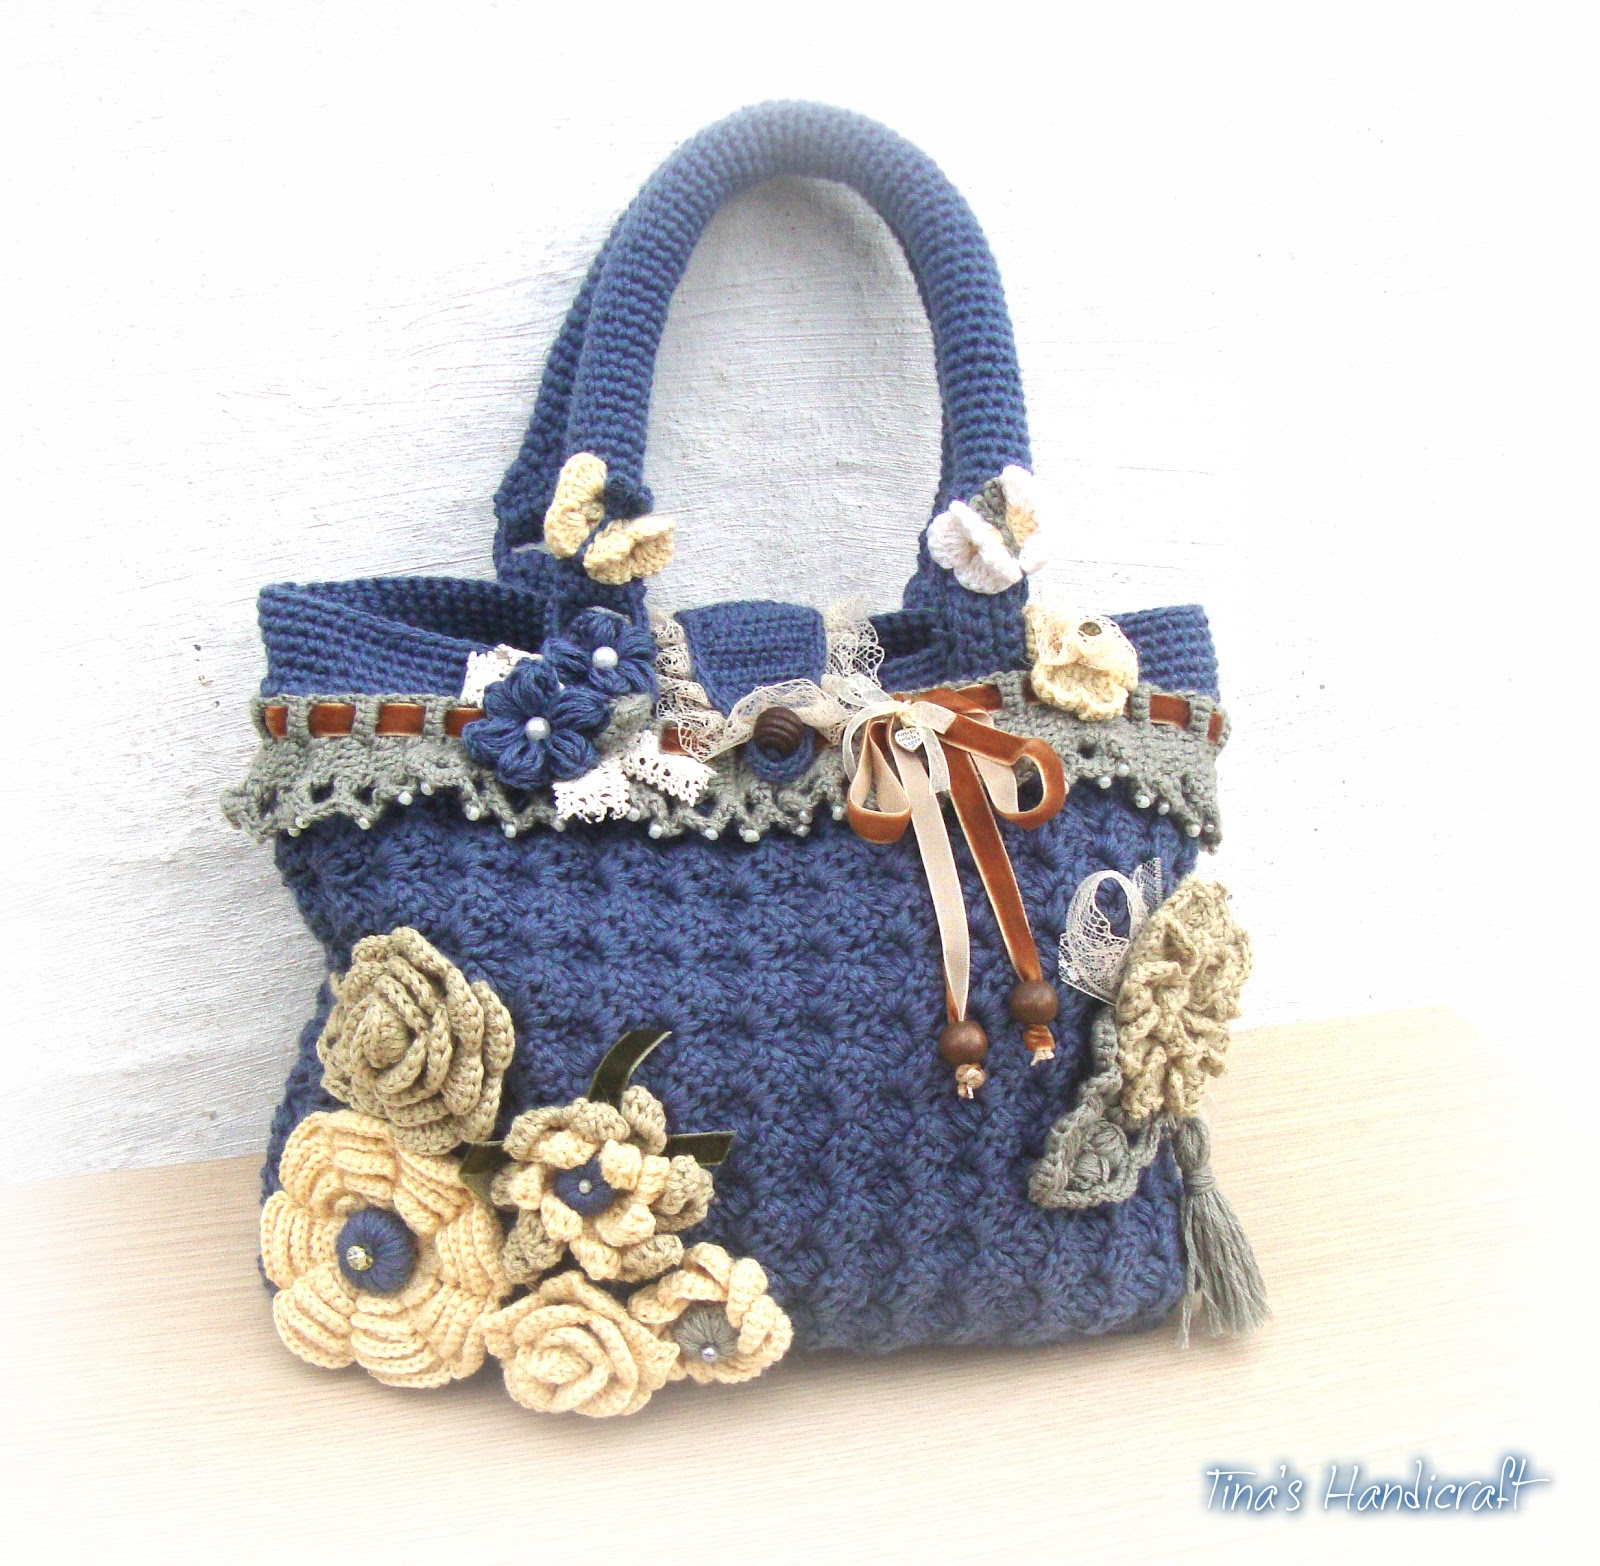 Tinas handicraft : crochet handmade bag